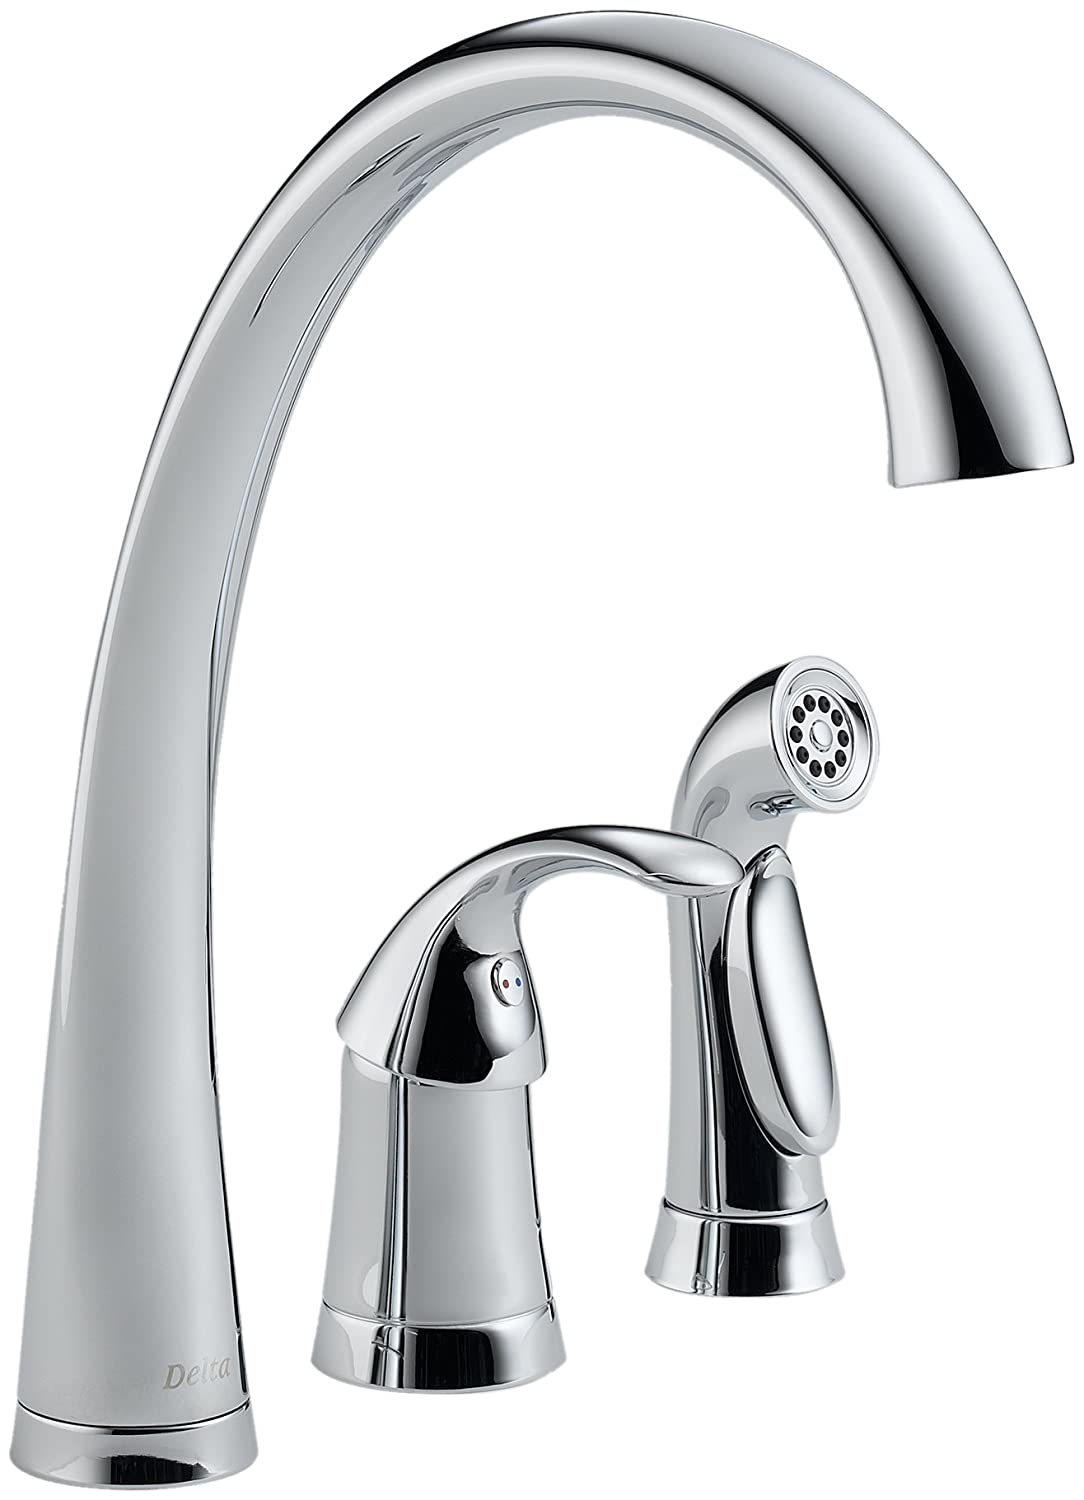 semi advice bring riverbend sink a faucets kitchen your can ideas chef for pro how inner to choose faucet home out